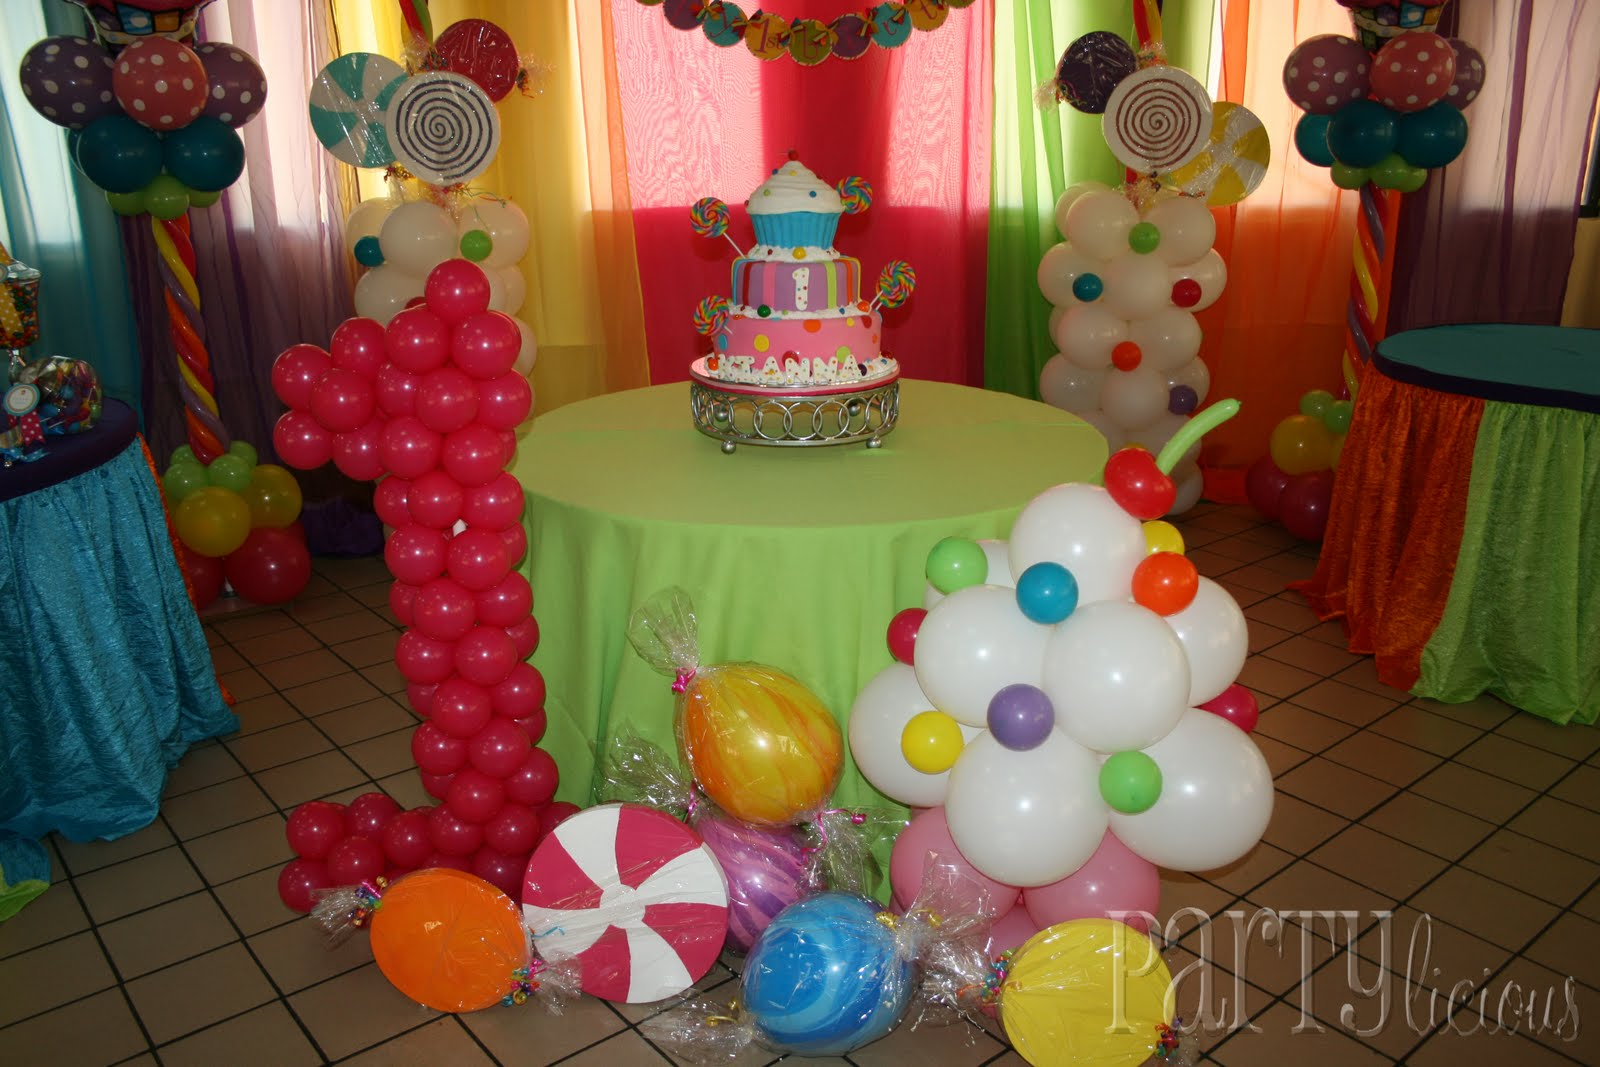 Partylicious events pr sweet 1st birthday candy cupcakes for Balloon decoration for 1st birthday party